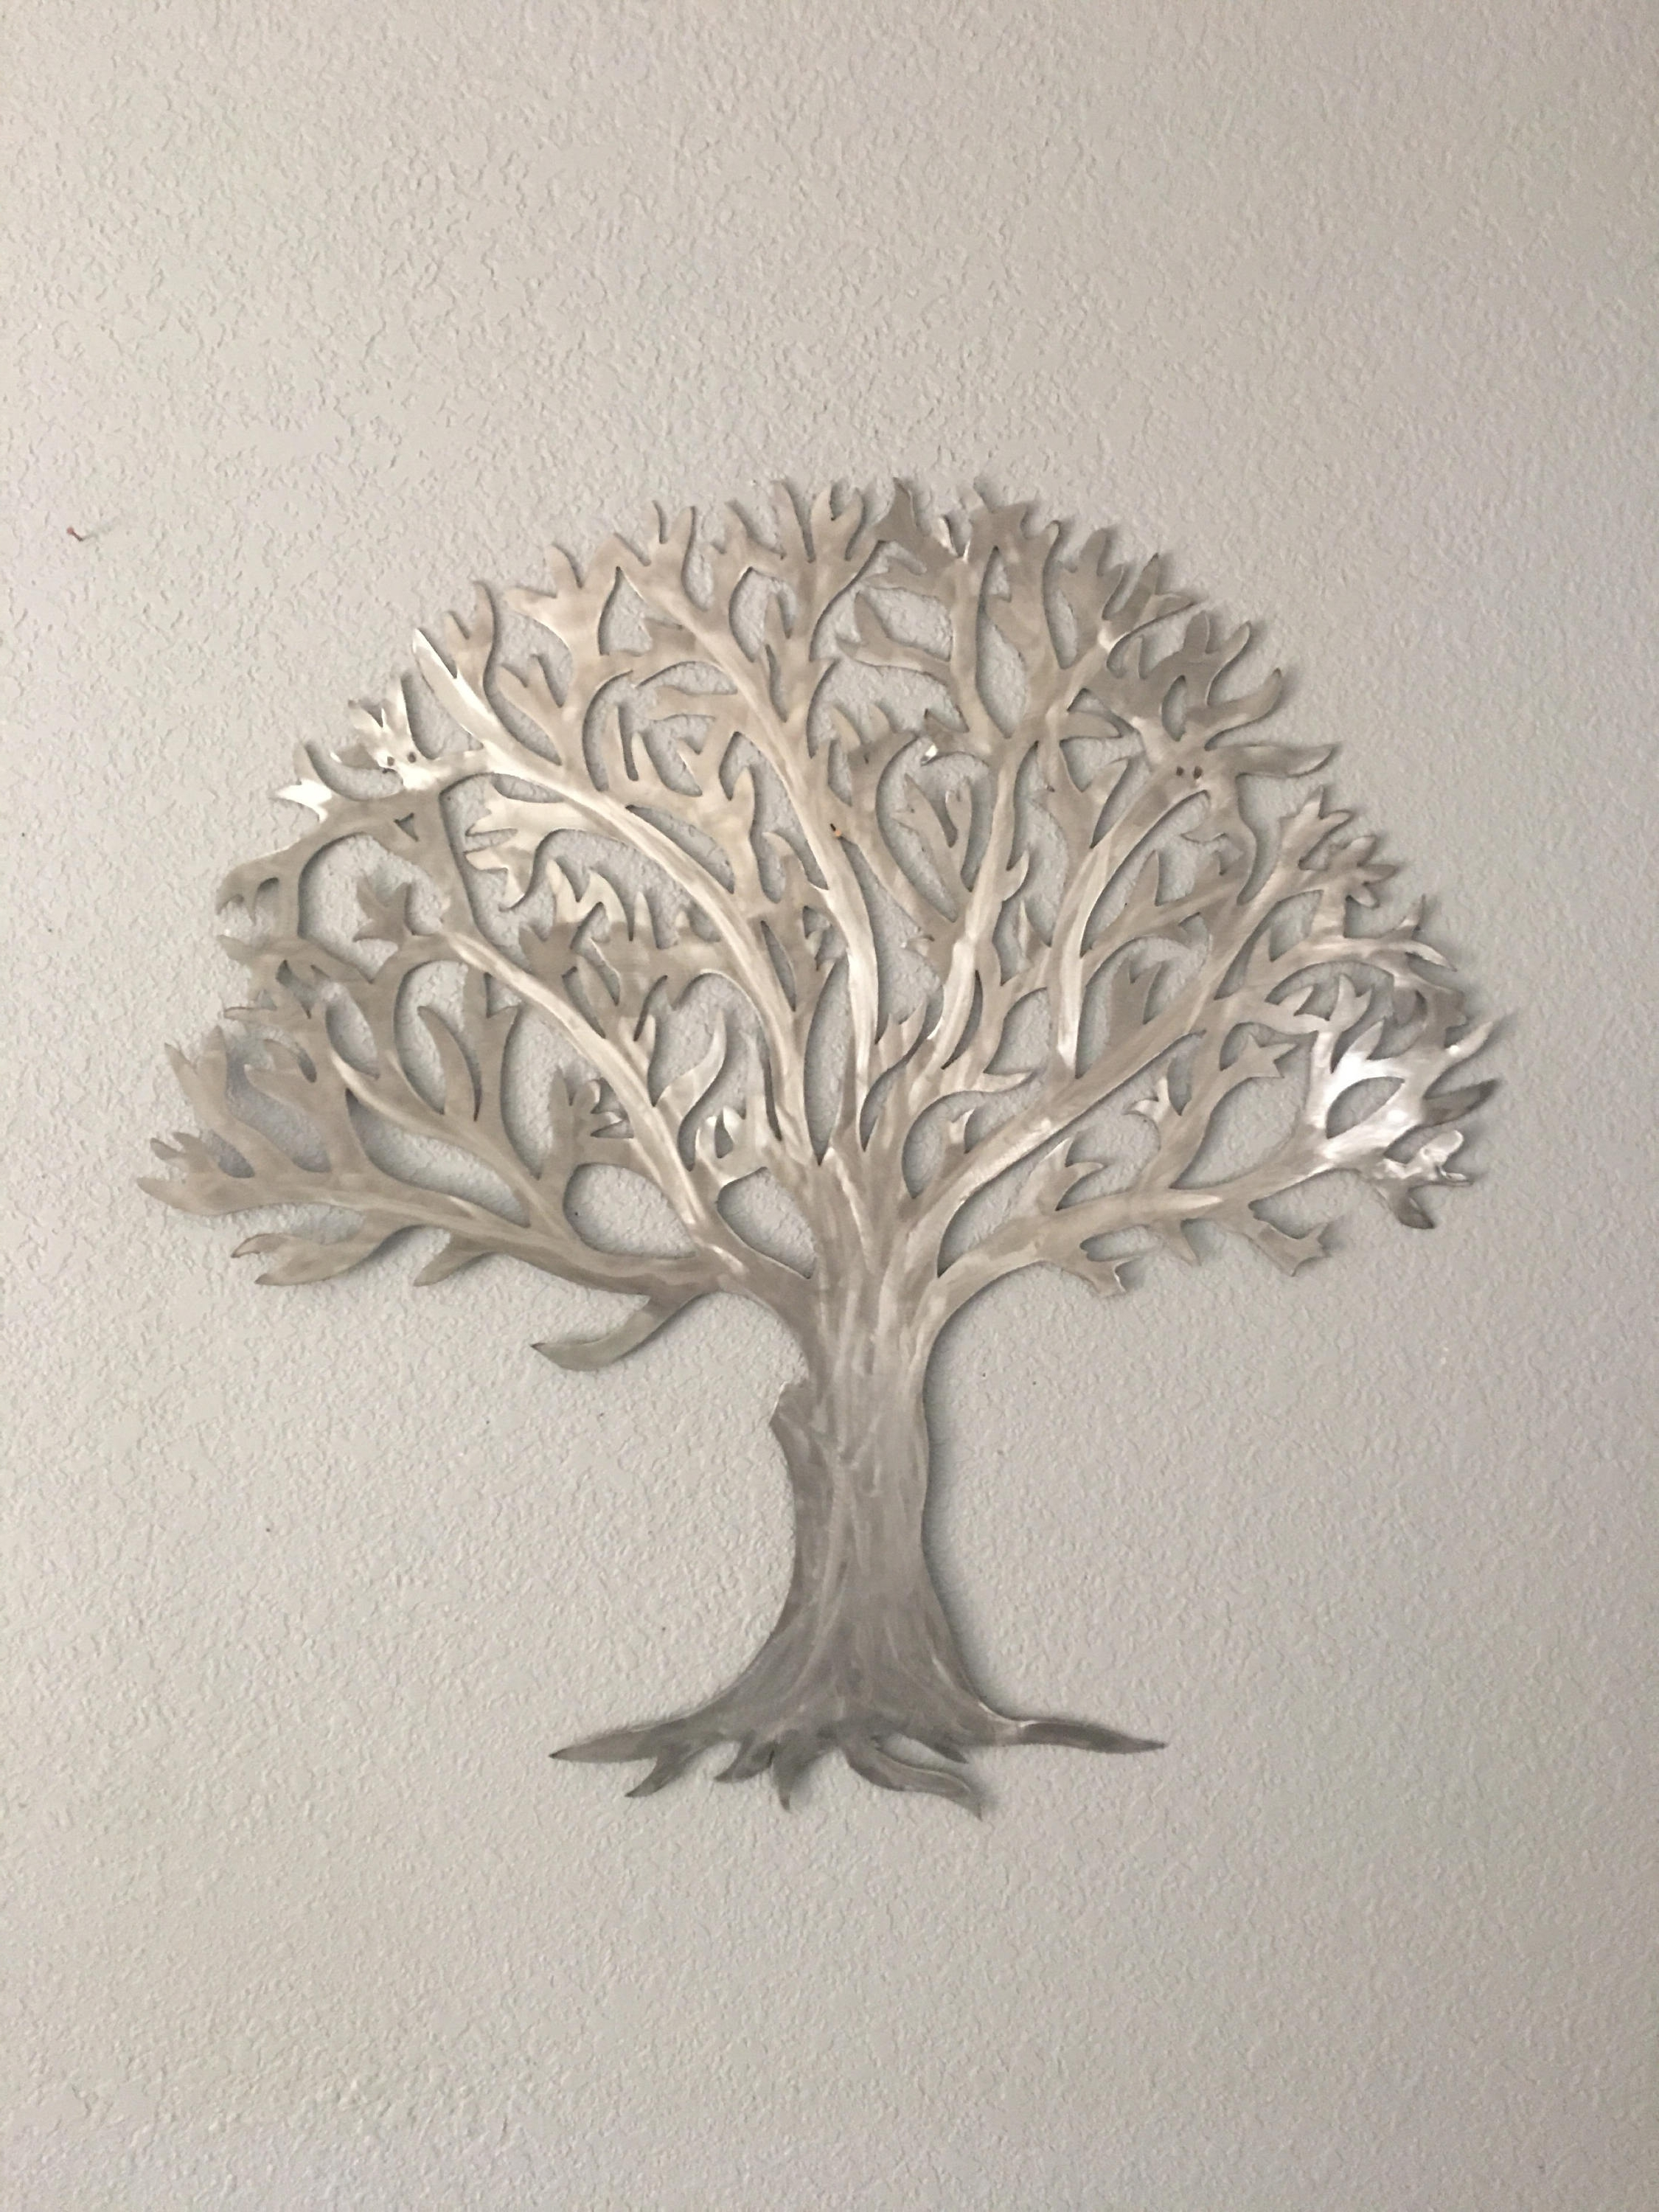 Metal Tree Wall Art Regarding Current Metal Tree Stainless Steel Tree Wall Art Wall Decor (View 13 of 15)